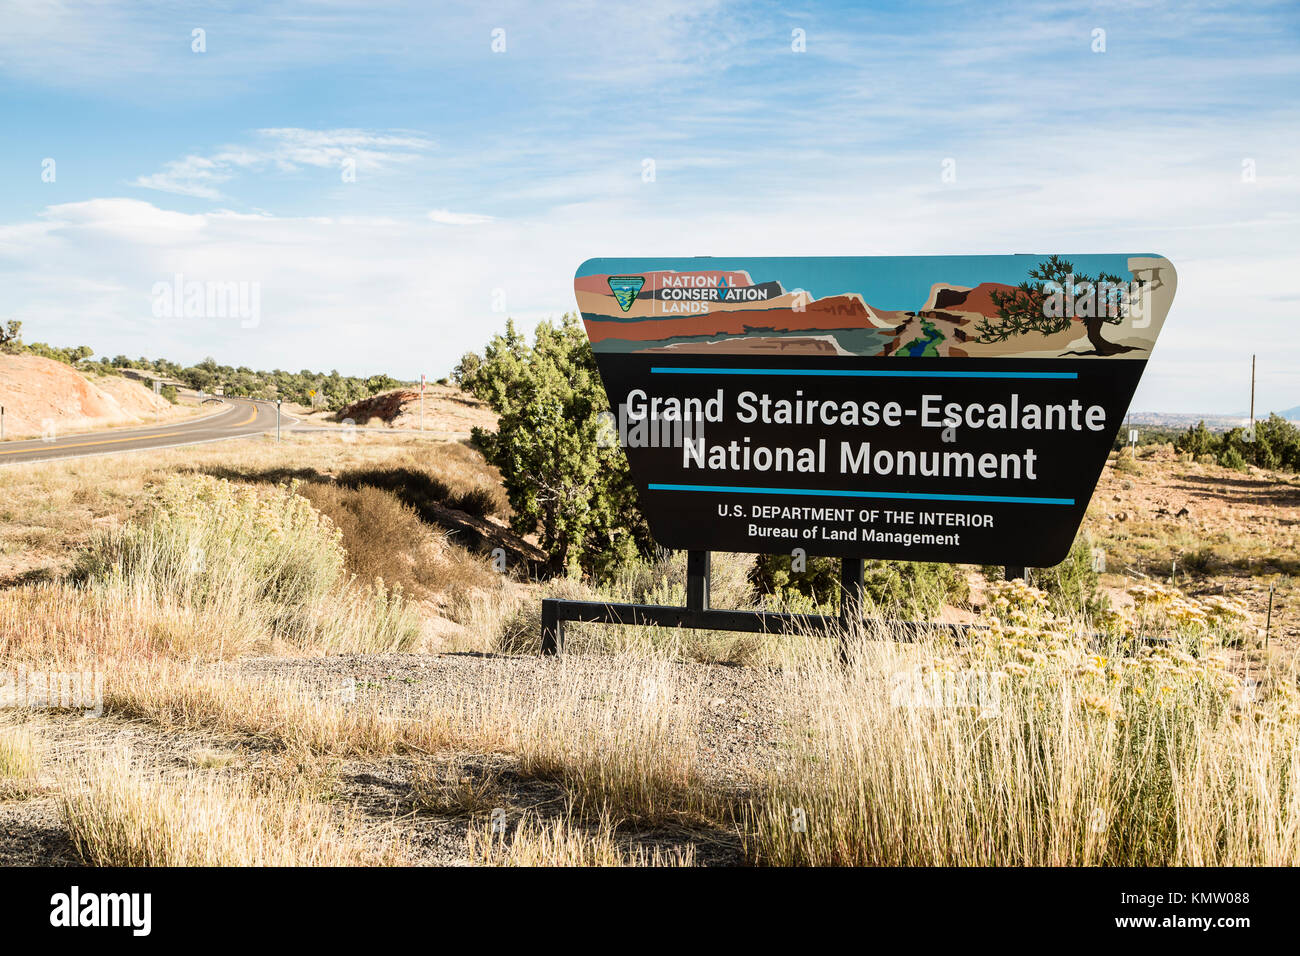 Grand Staircase-Escalante National Monument sign on the side of a highway in Utah - Stock Image